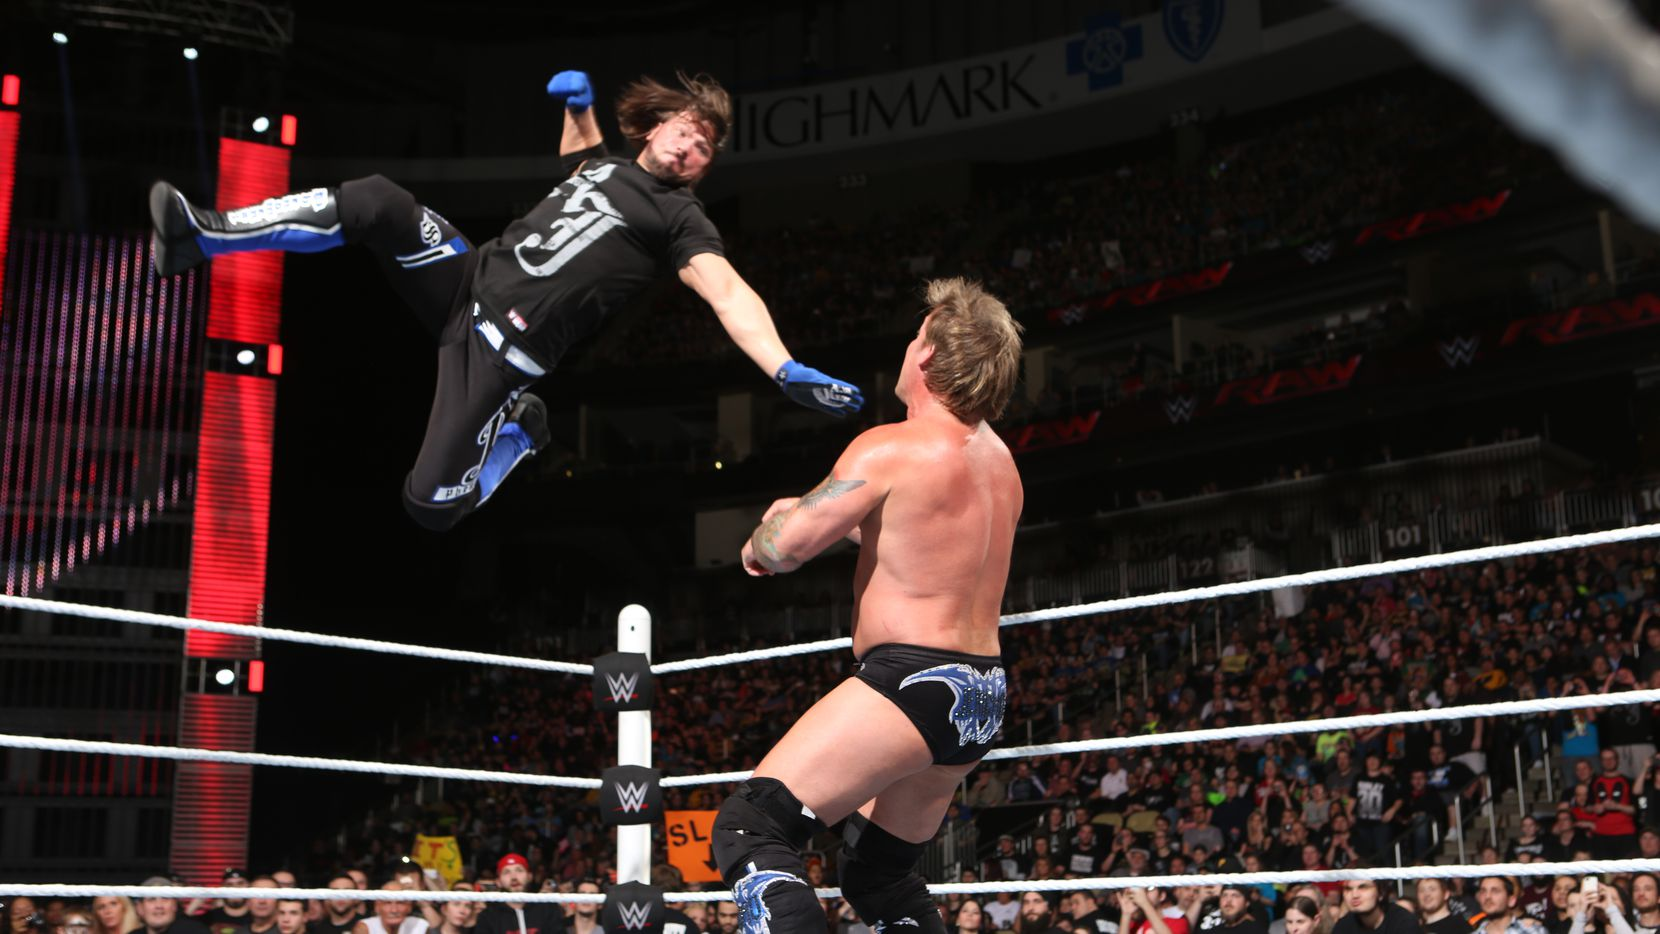 AJ Styles prepares to hit Chris Jericho with a flying forearm on an epsiode of Monday Night Raw. (Photo courtesy: WWE)